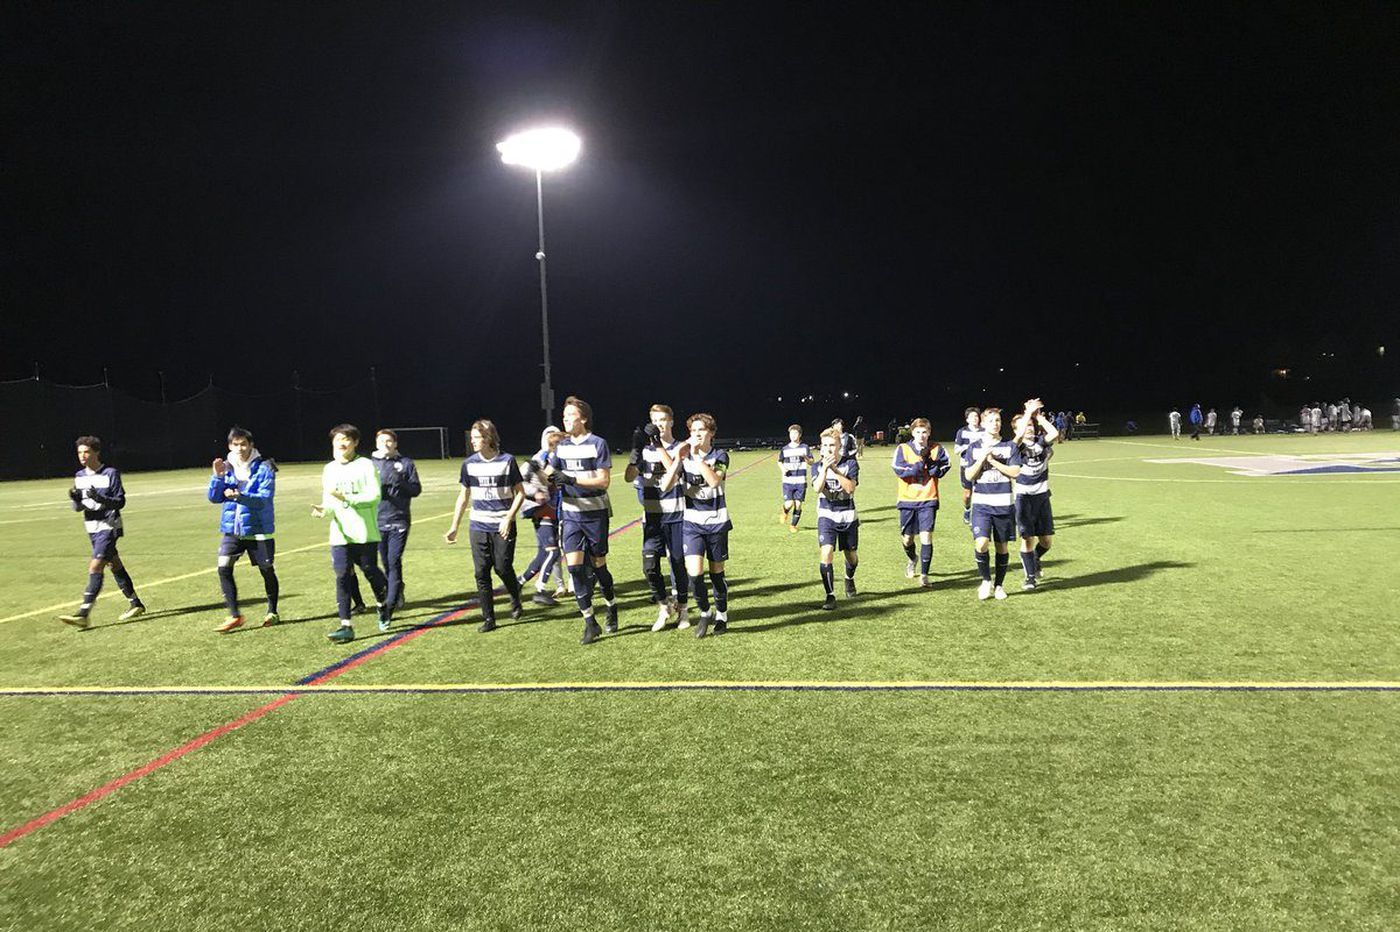 Thursday's Southeastern Pa. roundup: Hill School, Springside Chestnut Hill to meet in PAISAA boys' soccer final